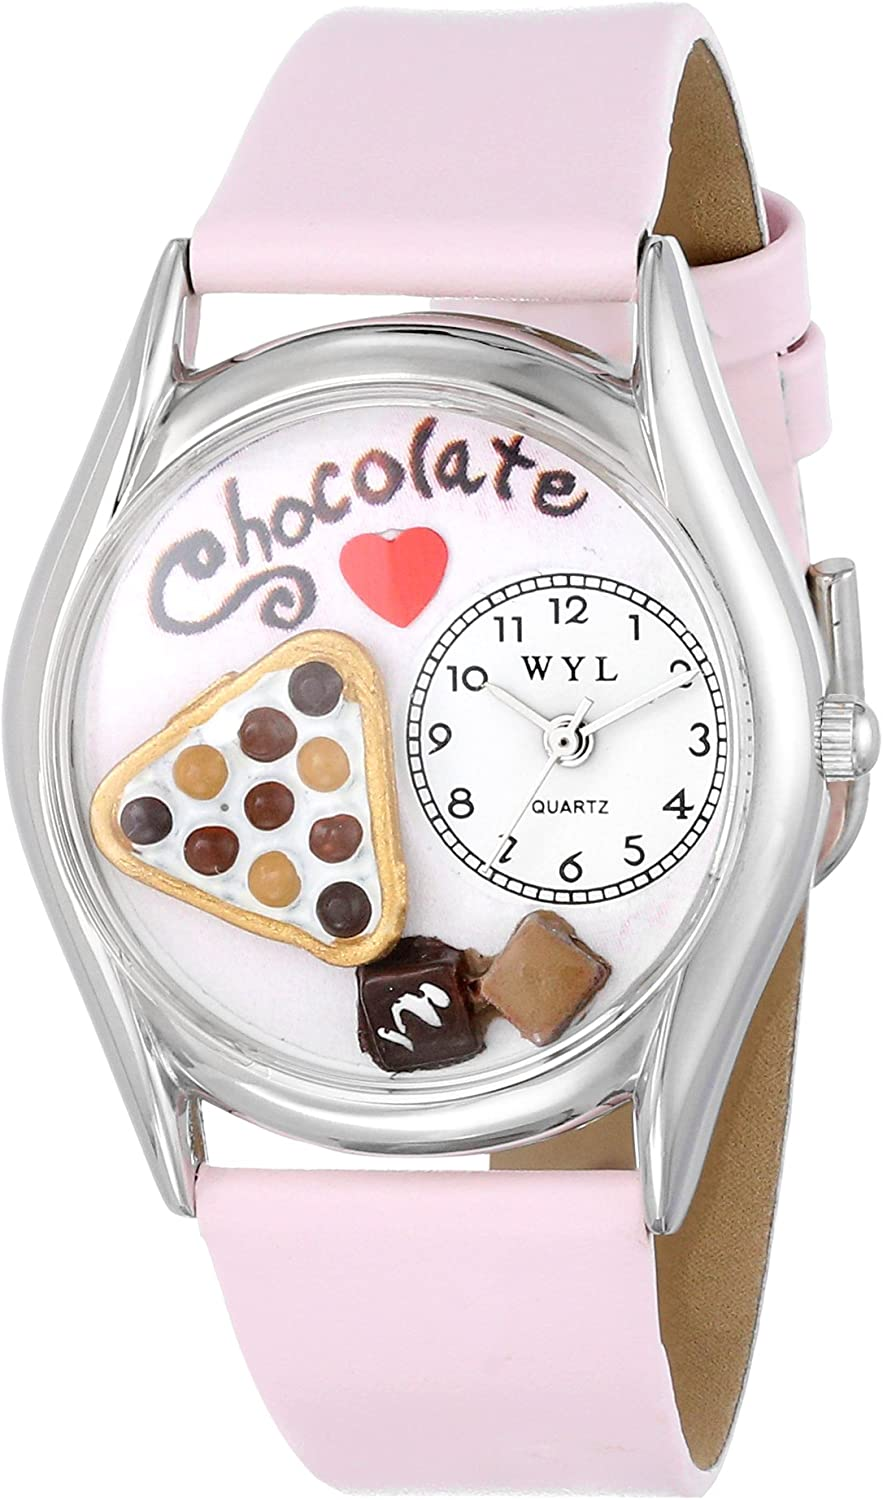 Whimsical Watches Women s S0310005 Chocolate Lover Pink Leather Watch